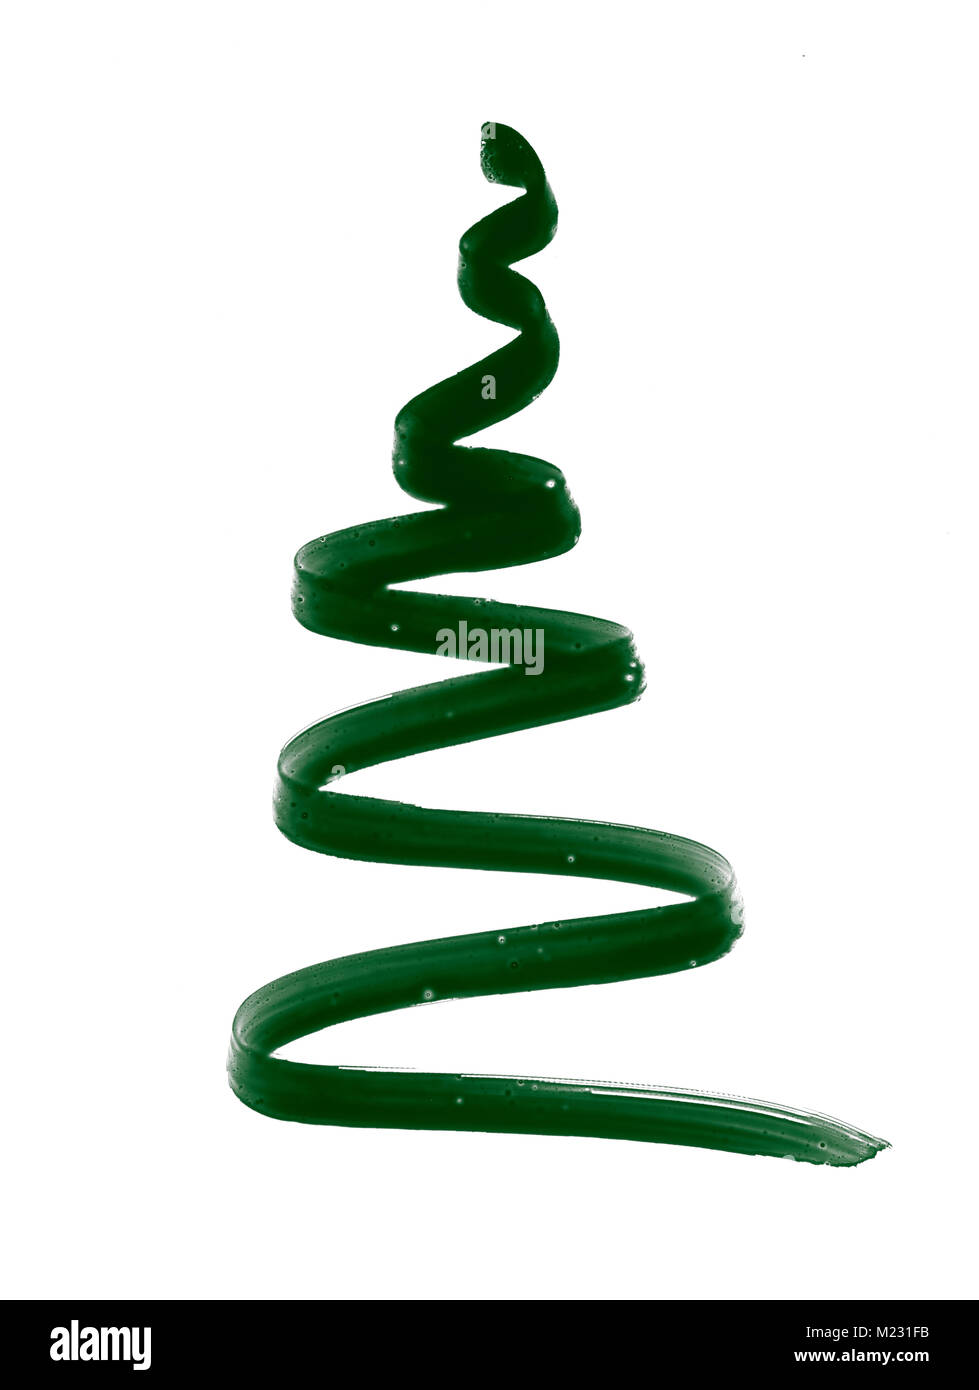 Stylization tree, or a tape made of green eyeliner on a white background - Stock Image